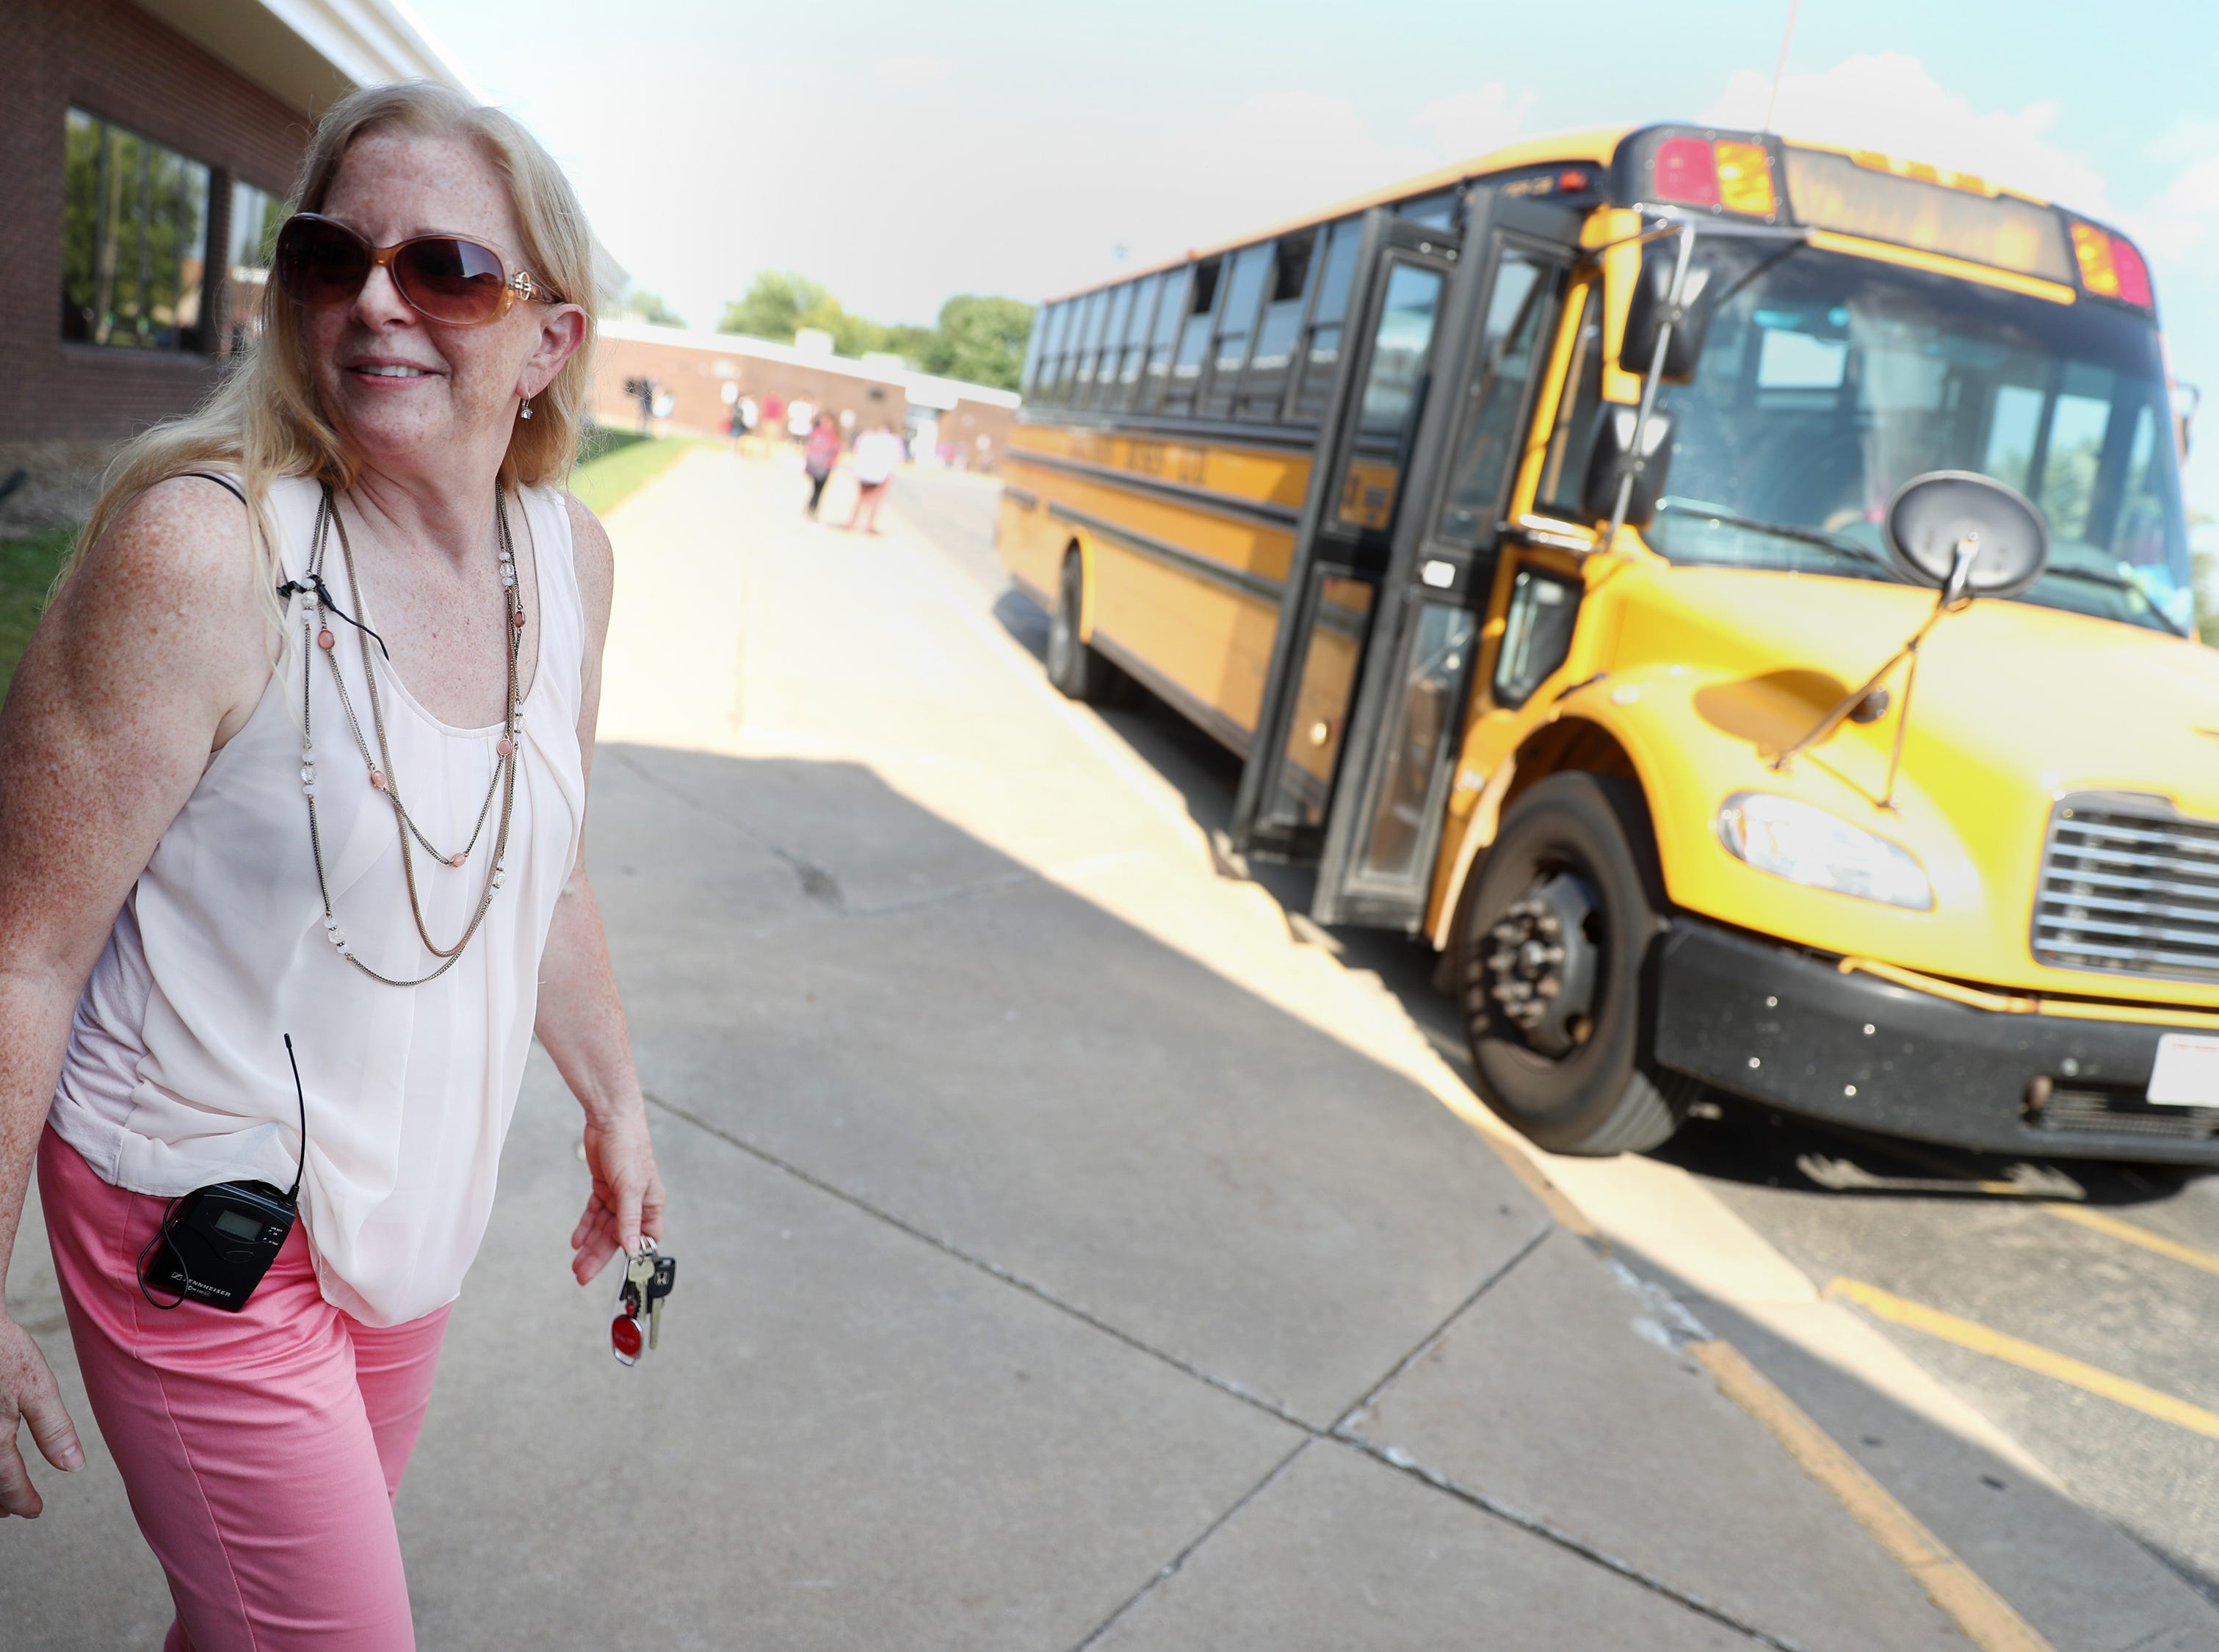 Maripat Franke, a special education teacher at Neenah High School currently enrolled in the Residency In Teacher Education 2.0 program at CESA 6, stands outside Neenah High School while working bus duty at the end of the day Monday, Sept. 17, 2018, in Neenah, Wis.